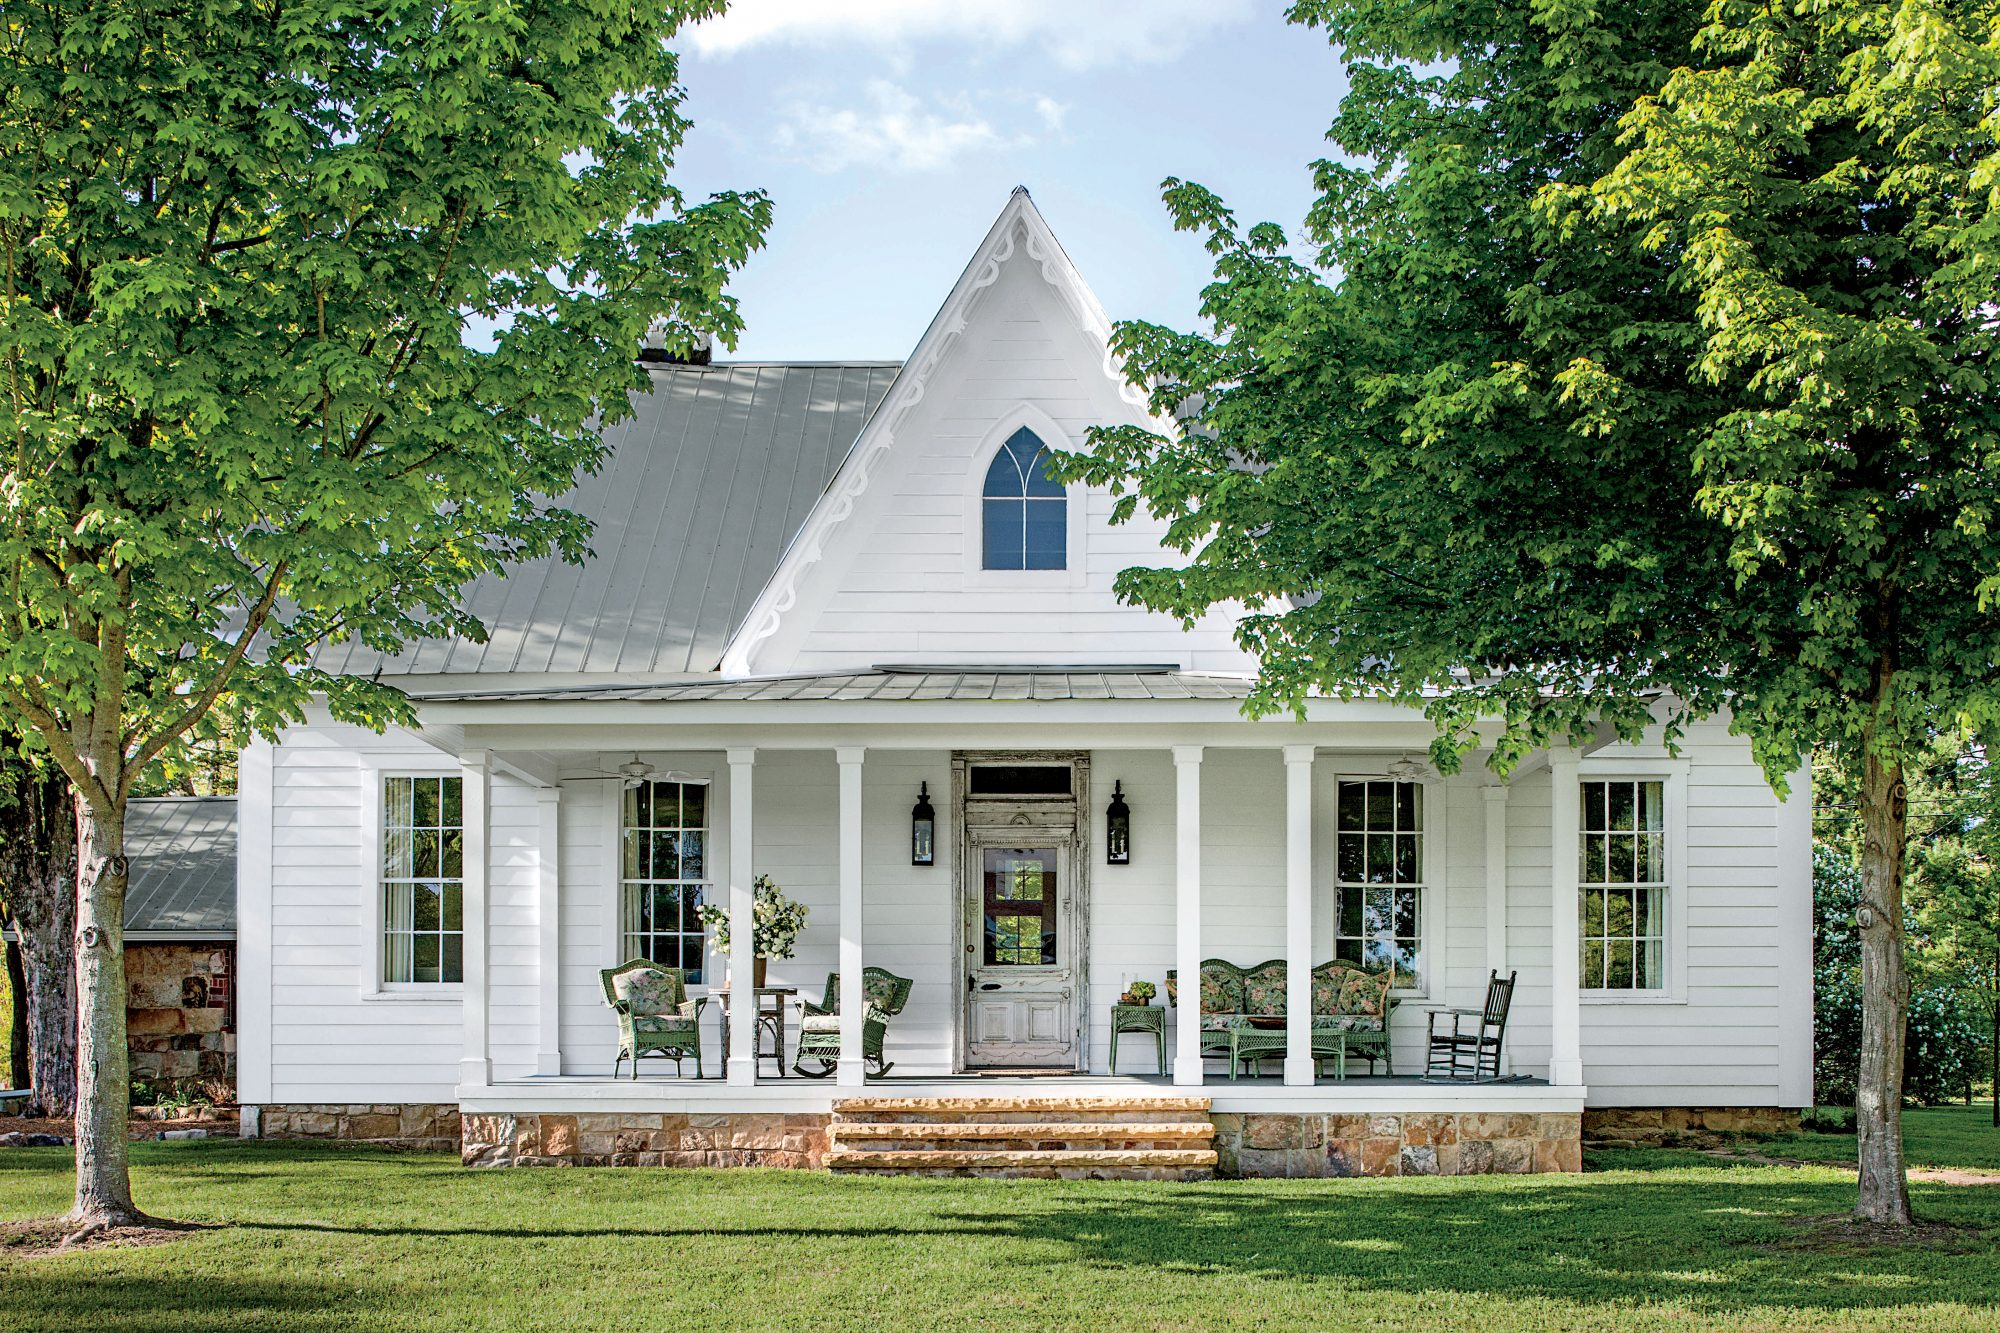 The Prettiest Modern Farmhouse We've Ever Seen